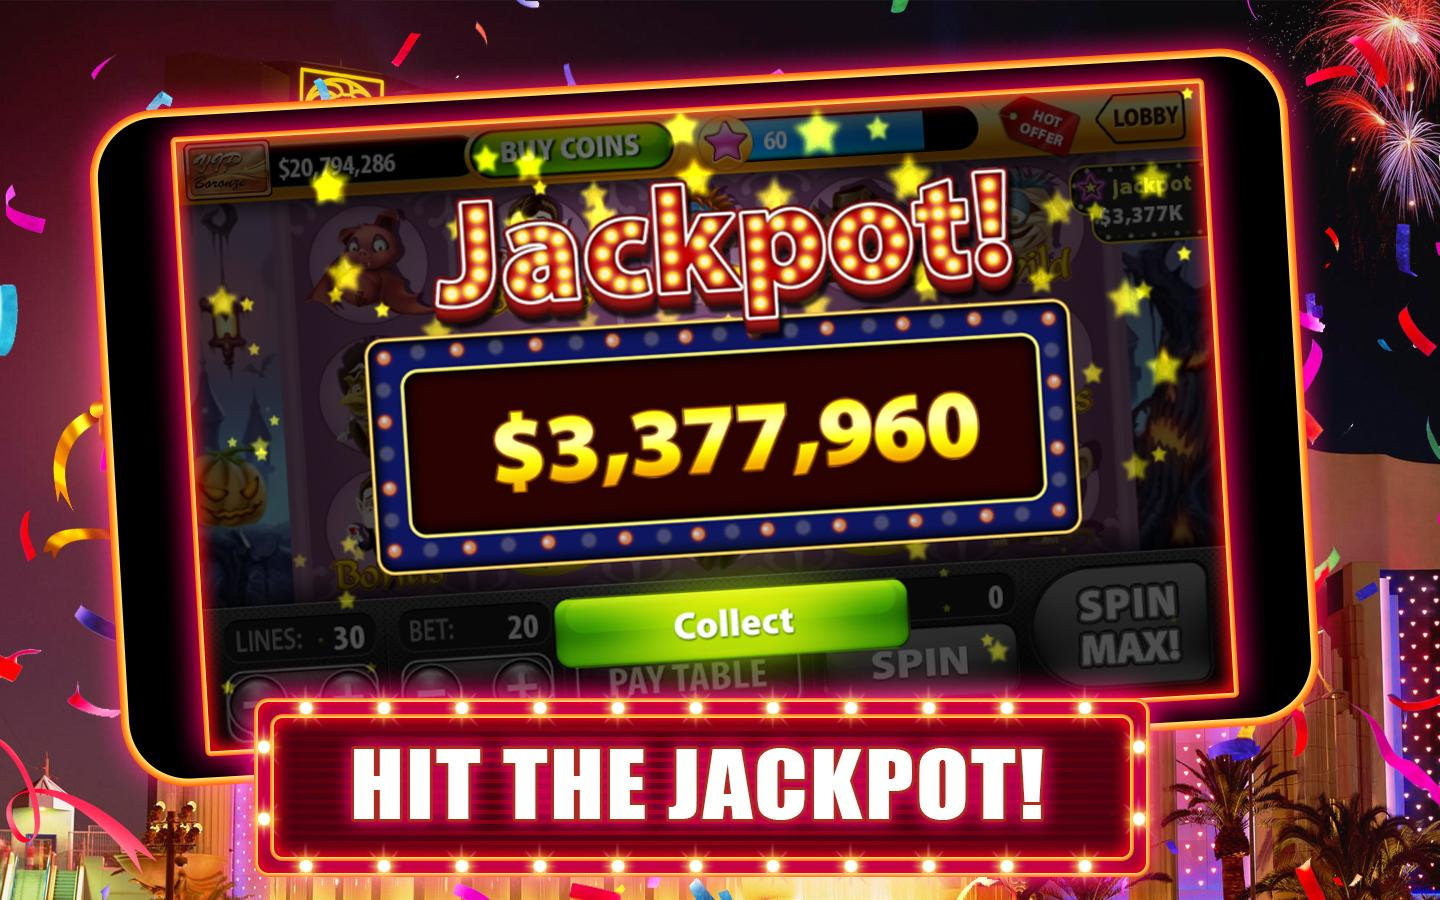 huge casino wins on video